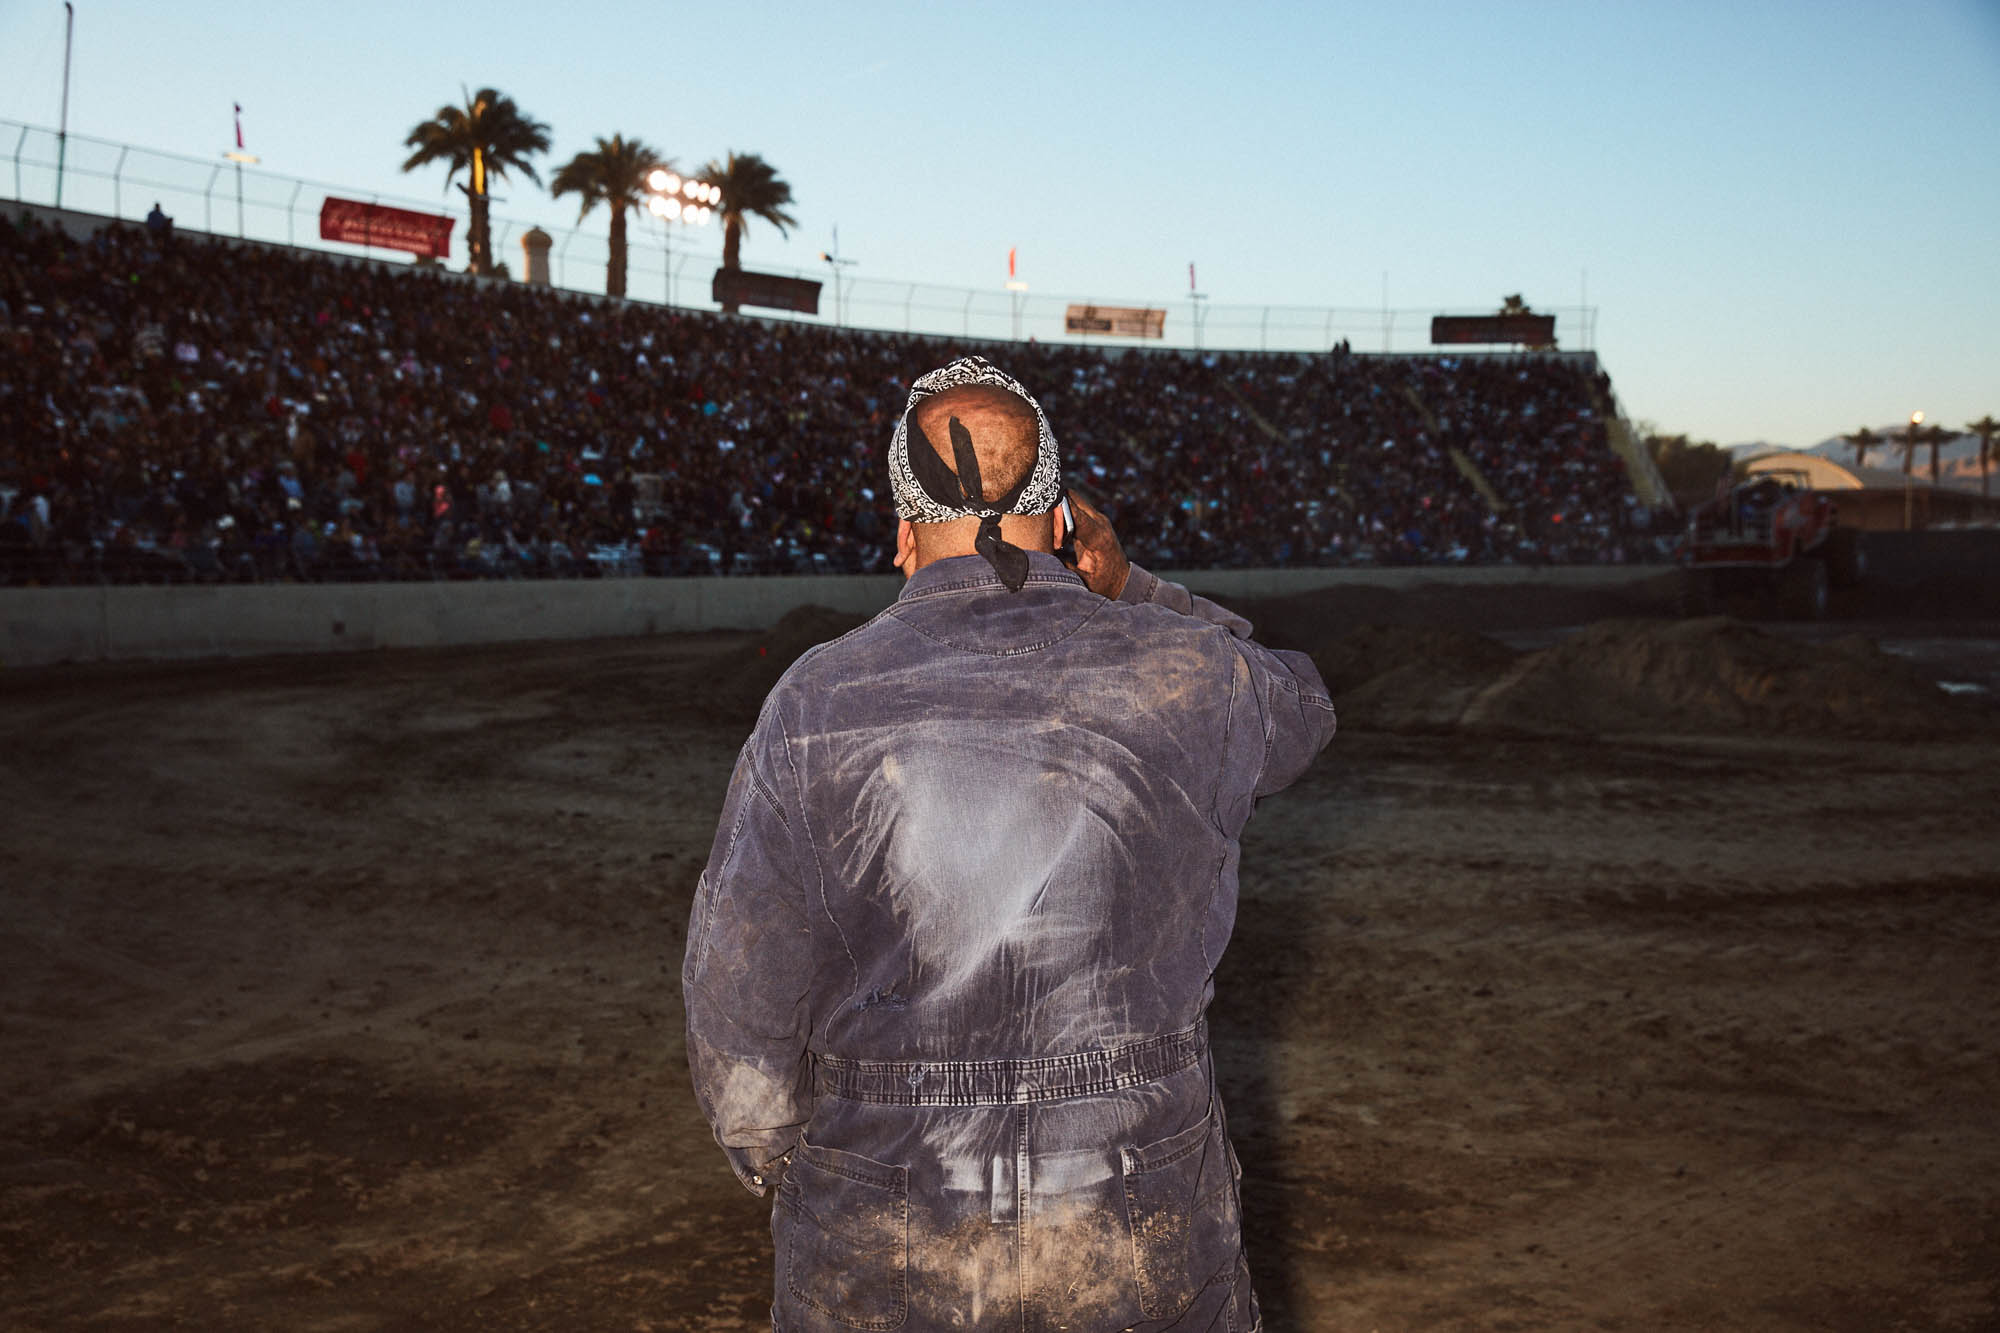 DEMOLITION_DERBY_JOHN_02-0637